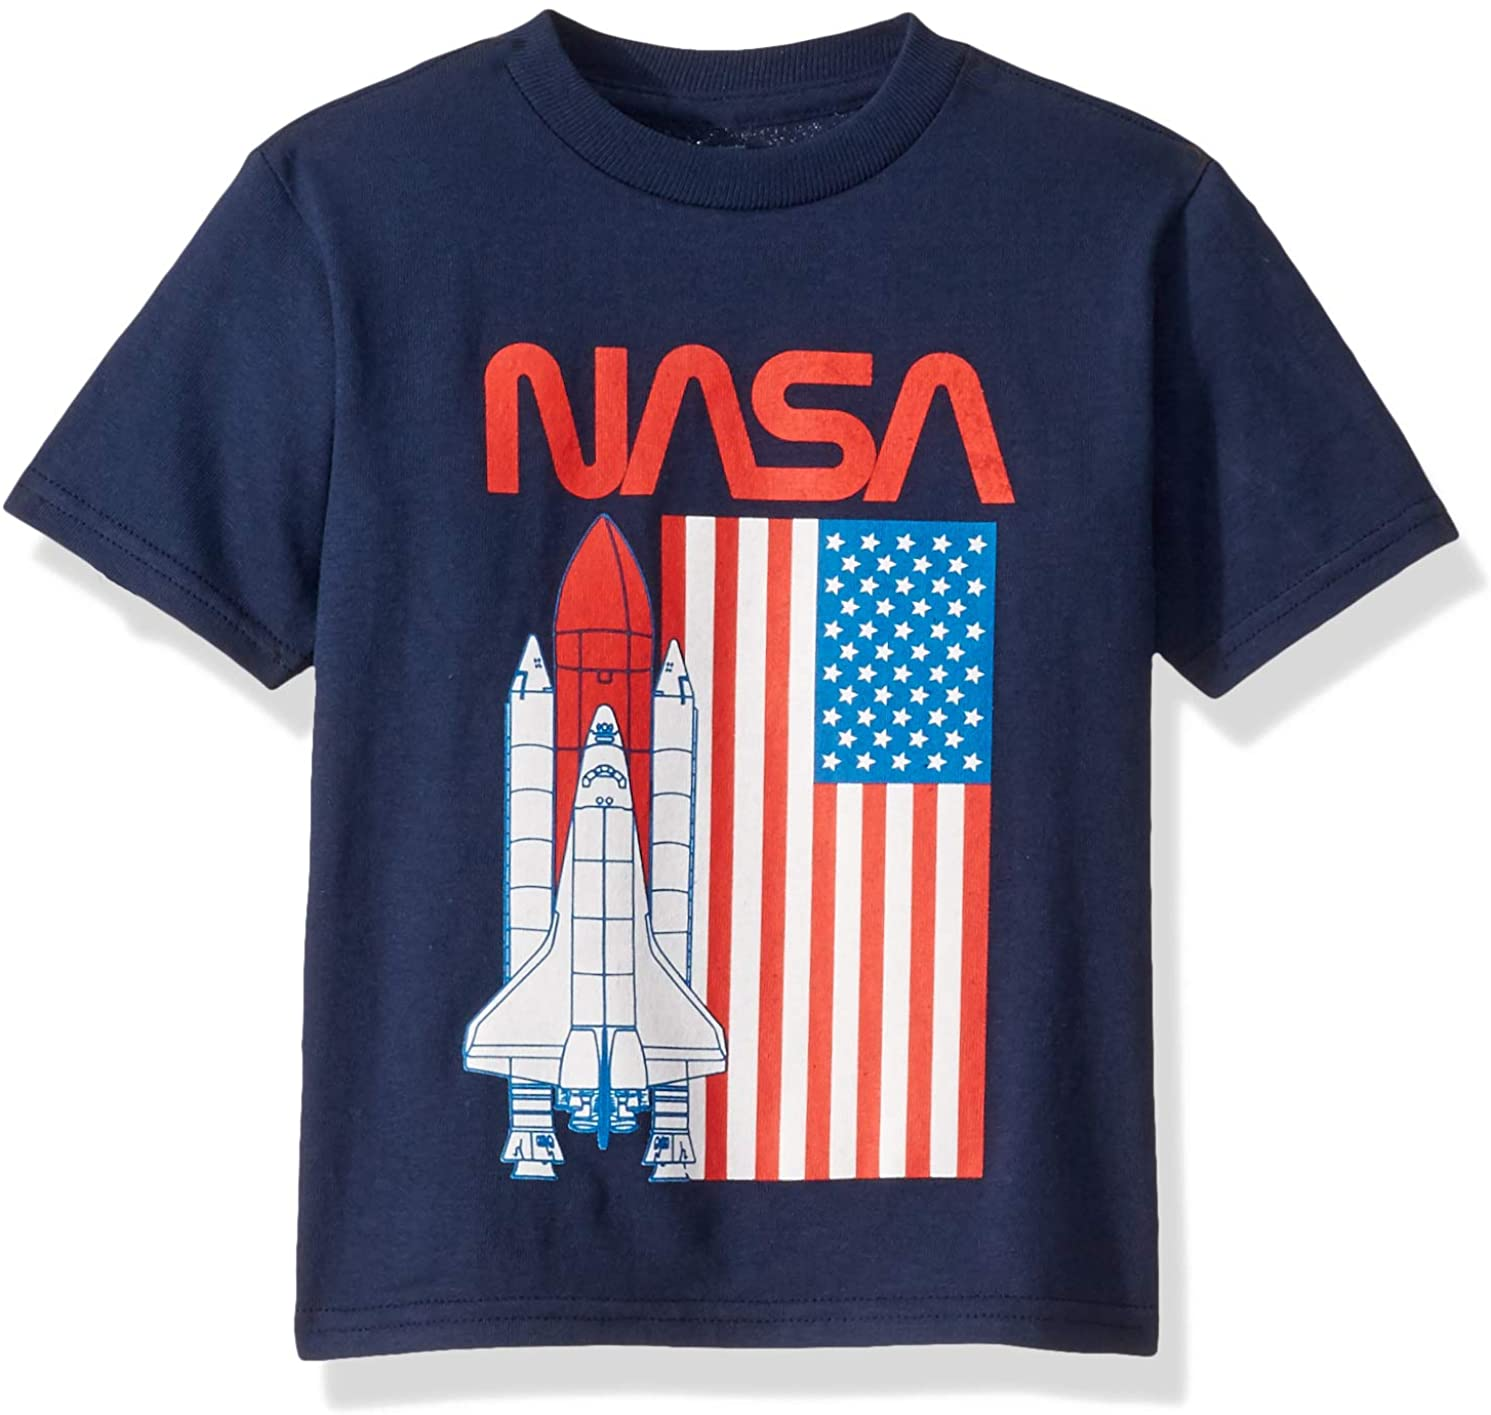 Freeze NASA Space Shuttle USA Flag Toddler T-Shirt